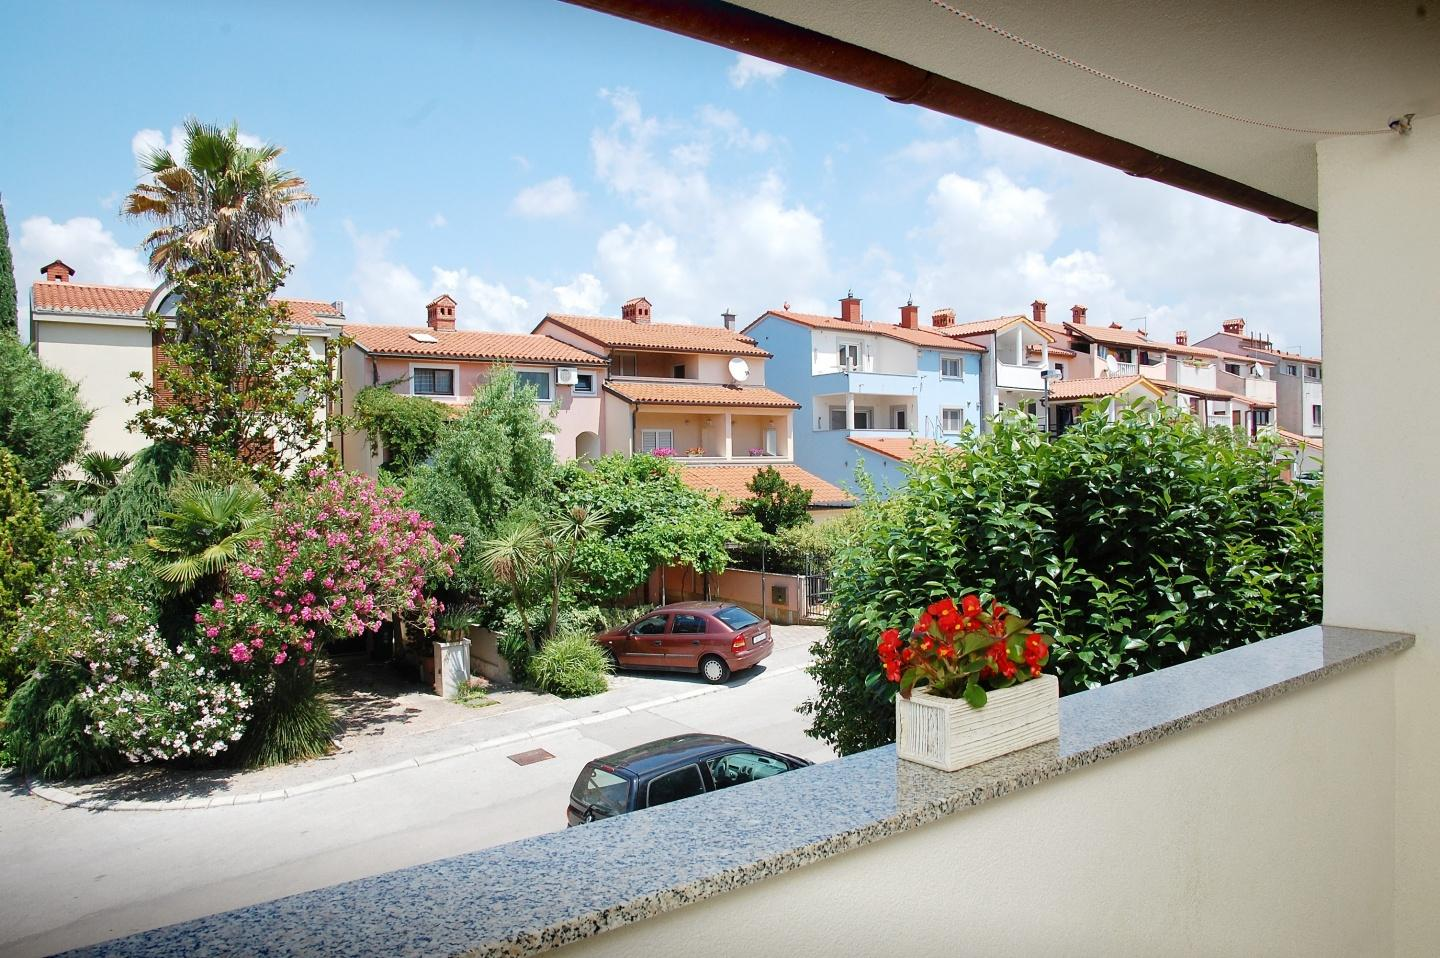 Cozy apartment close to the center of Pula with... Slide-2